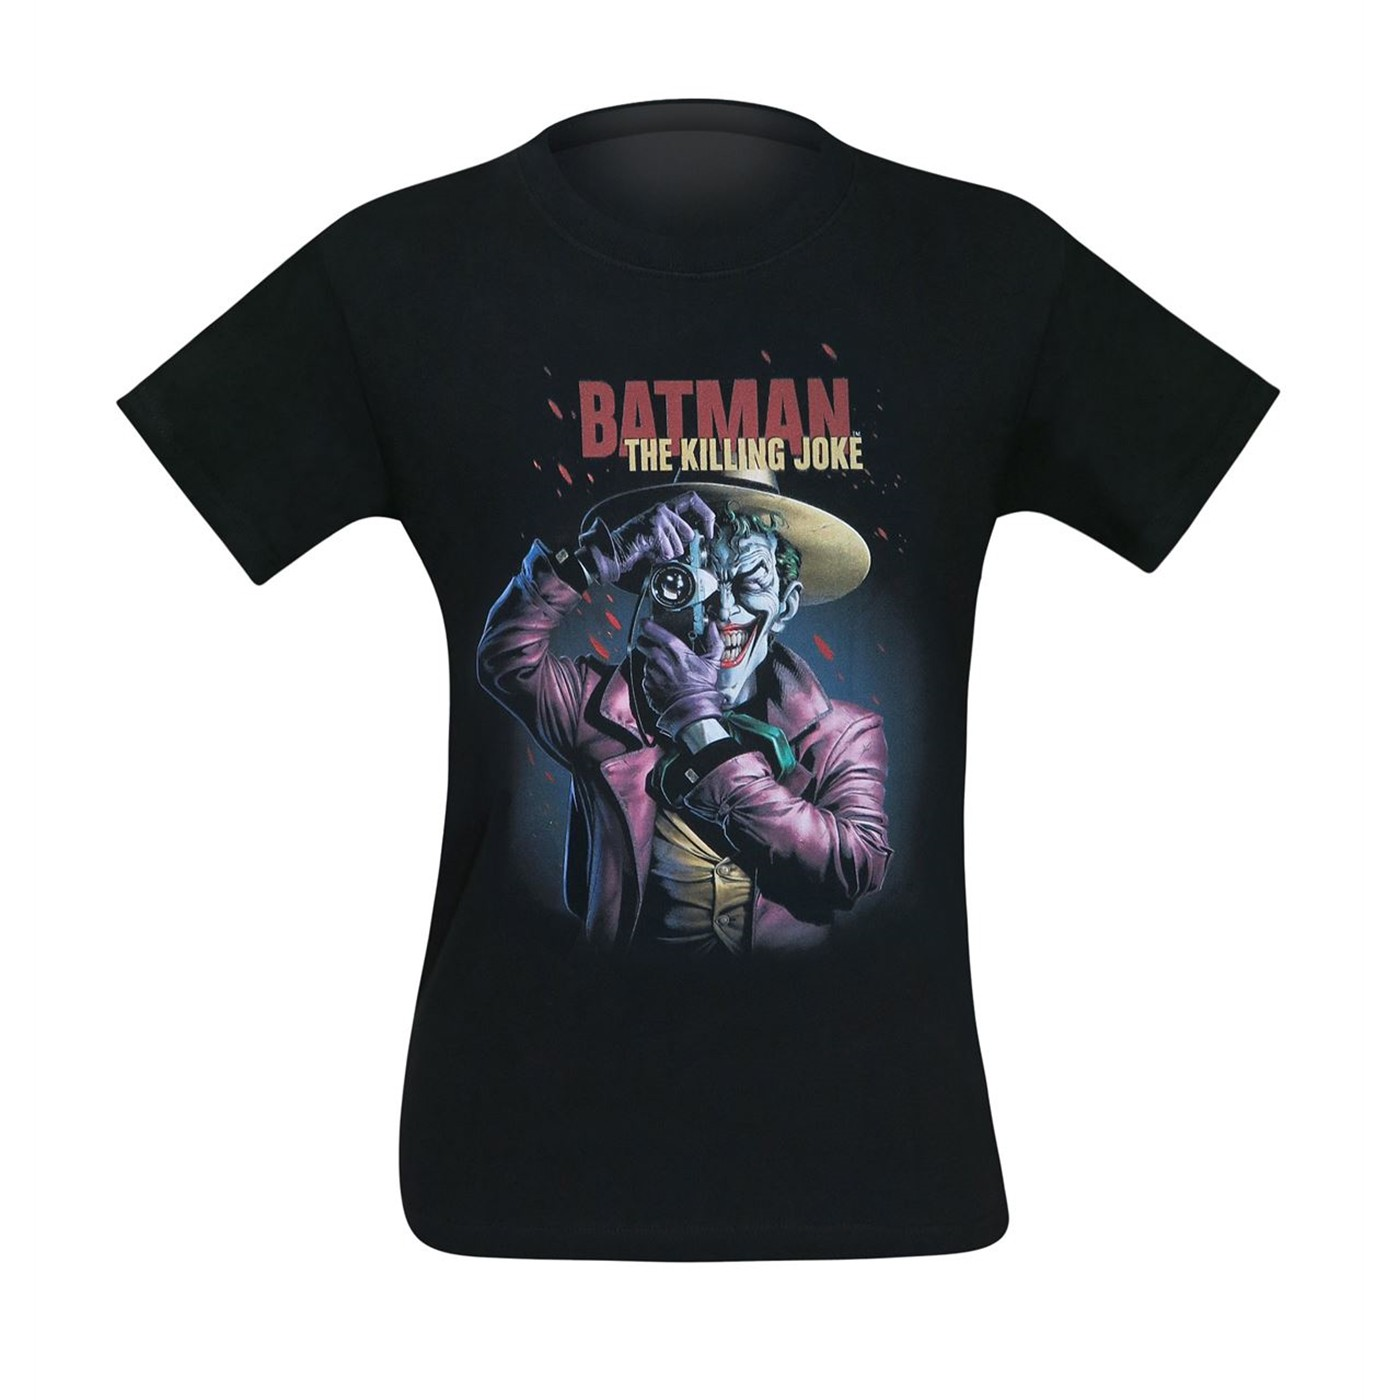 The Joker The Killing Joke Smile Poster Men's T-Shirt